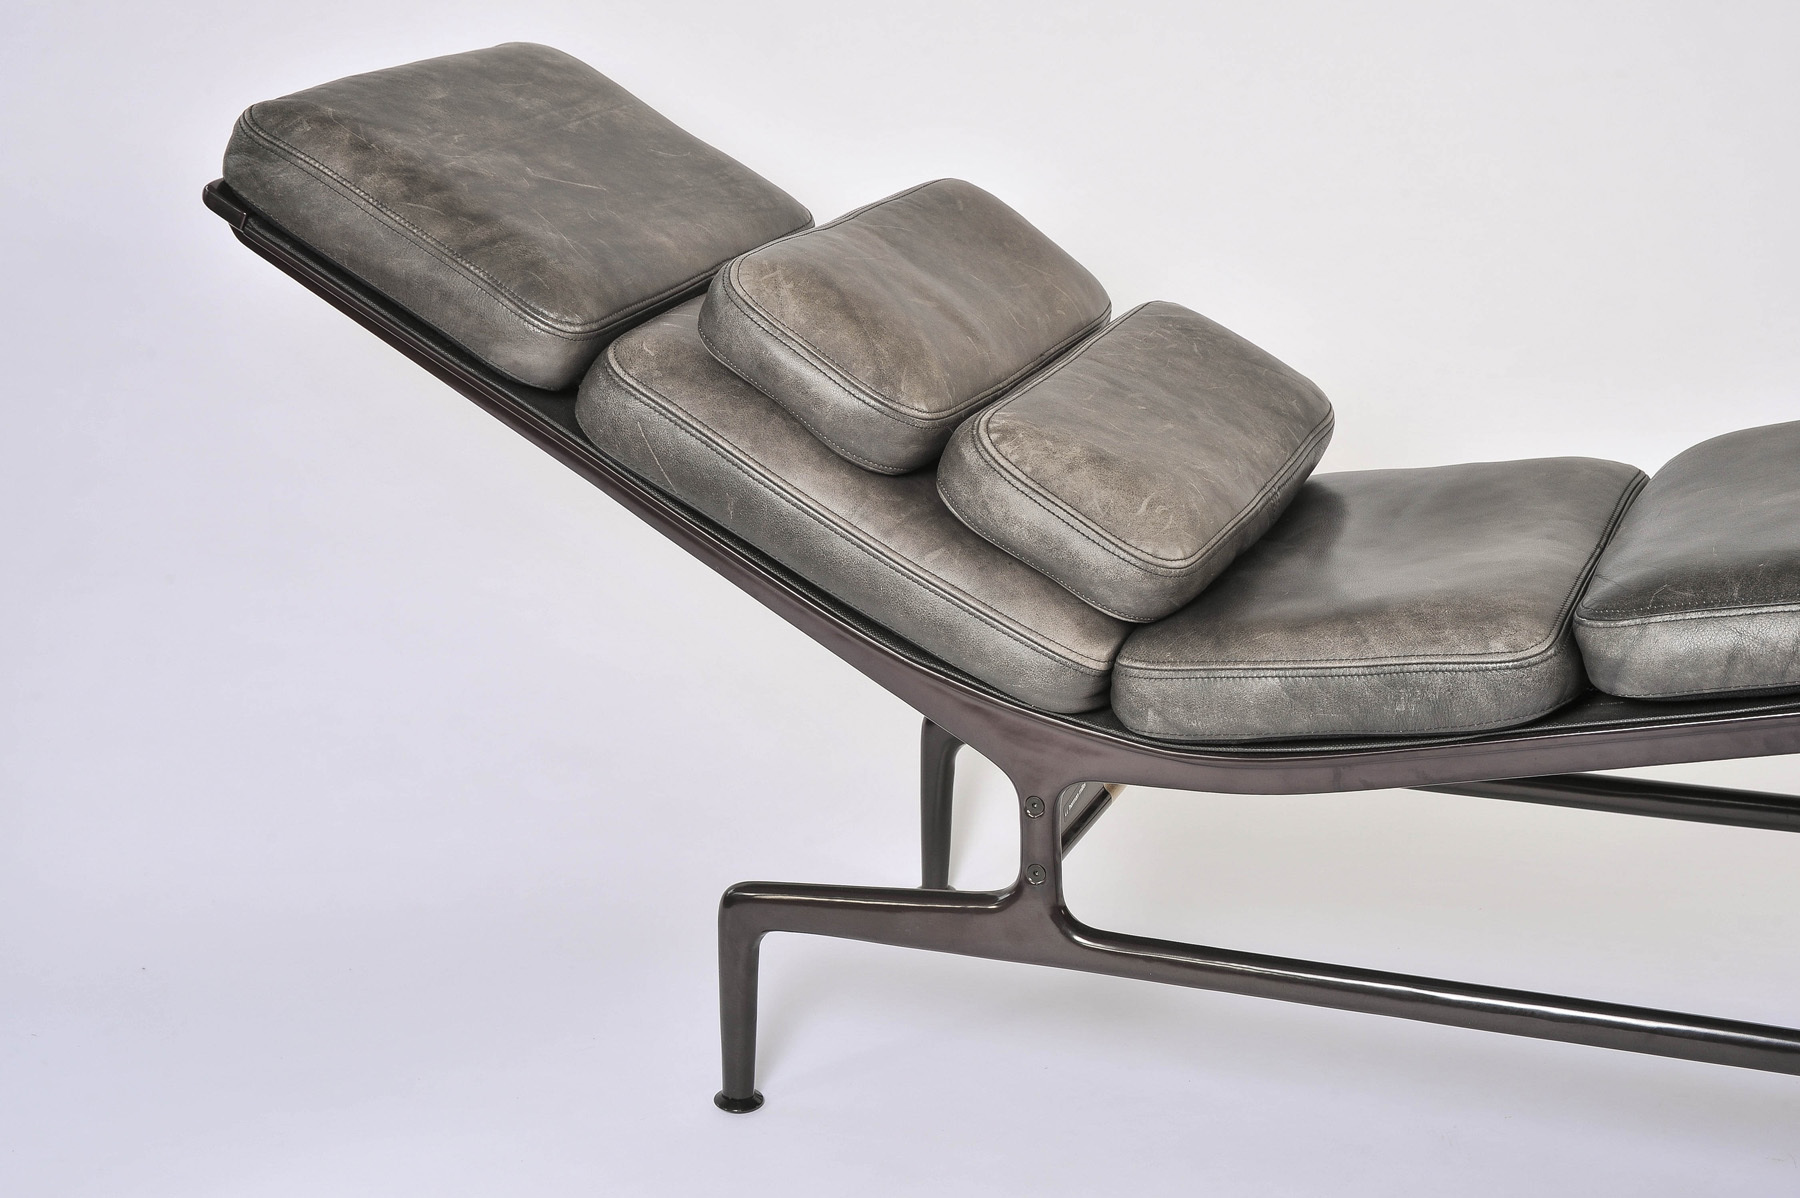 Charles eames 39 billy wilder 39 chaise longue valerie wade for Chaise charles eames ebay